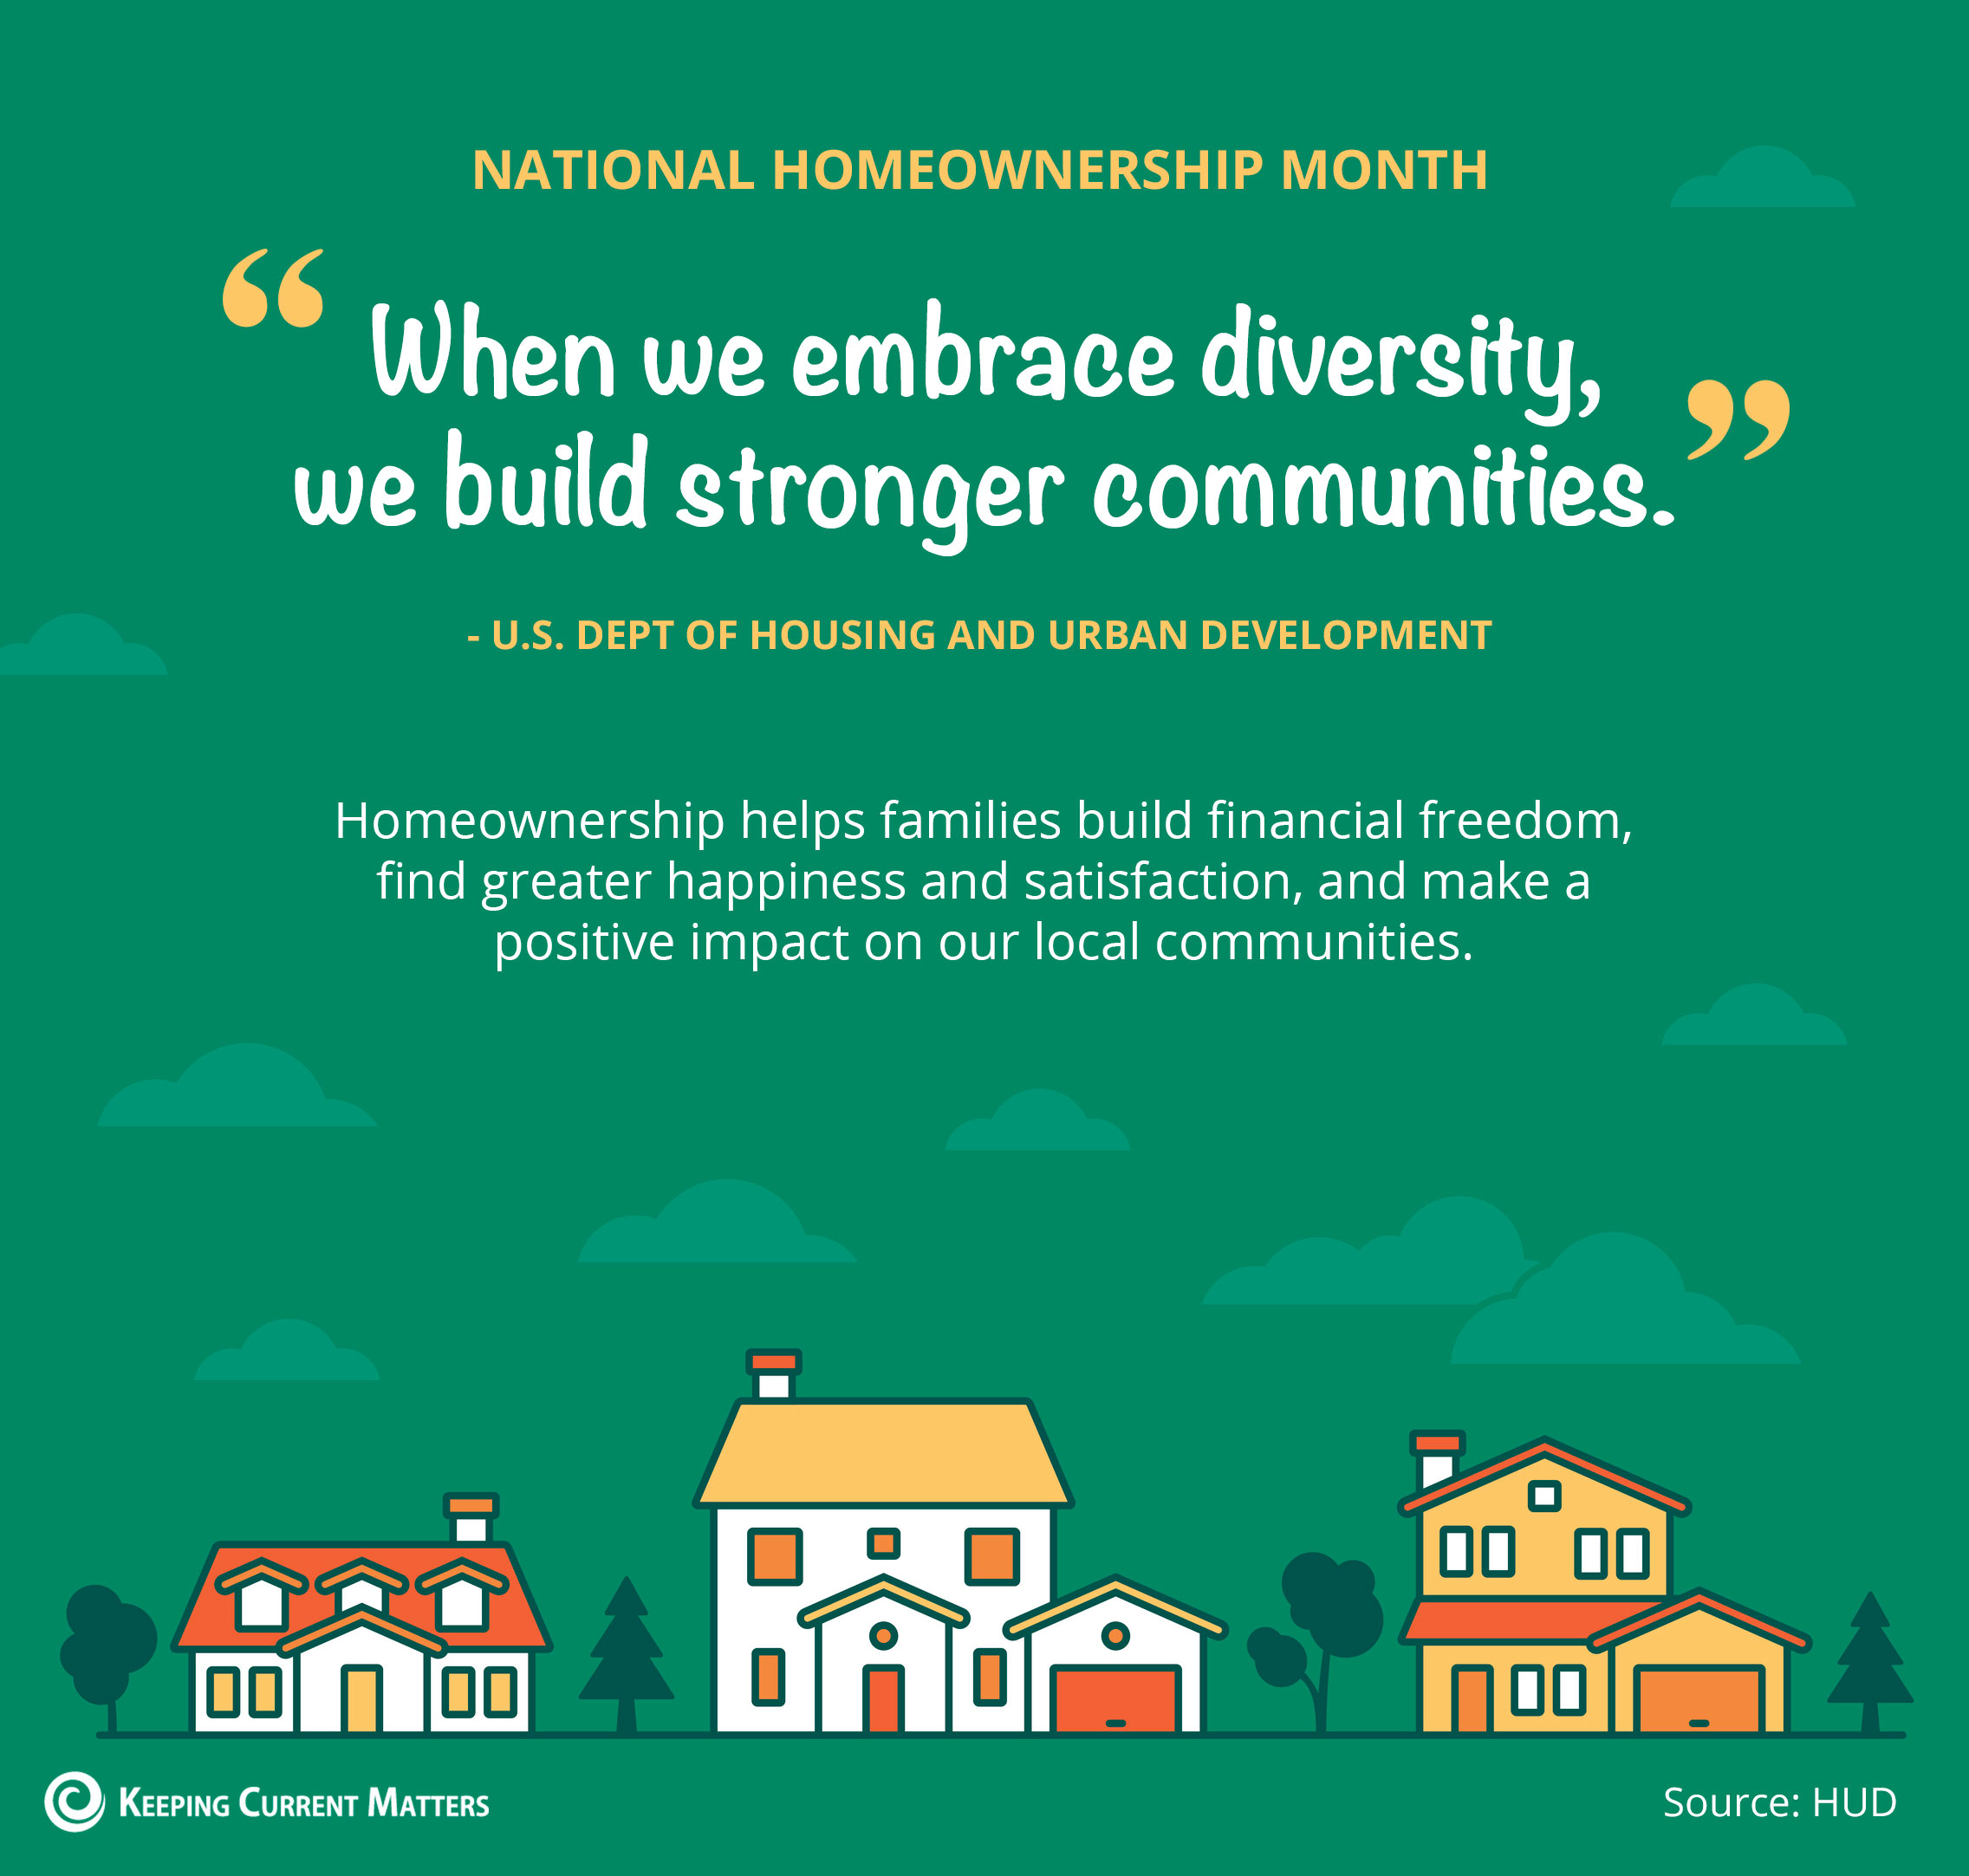 National Homeownership Month [INFOGRAPHIC] | Keeping Current Matters